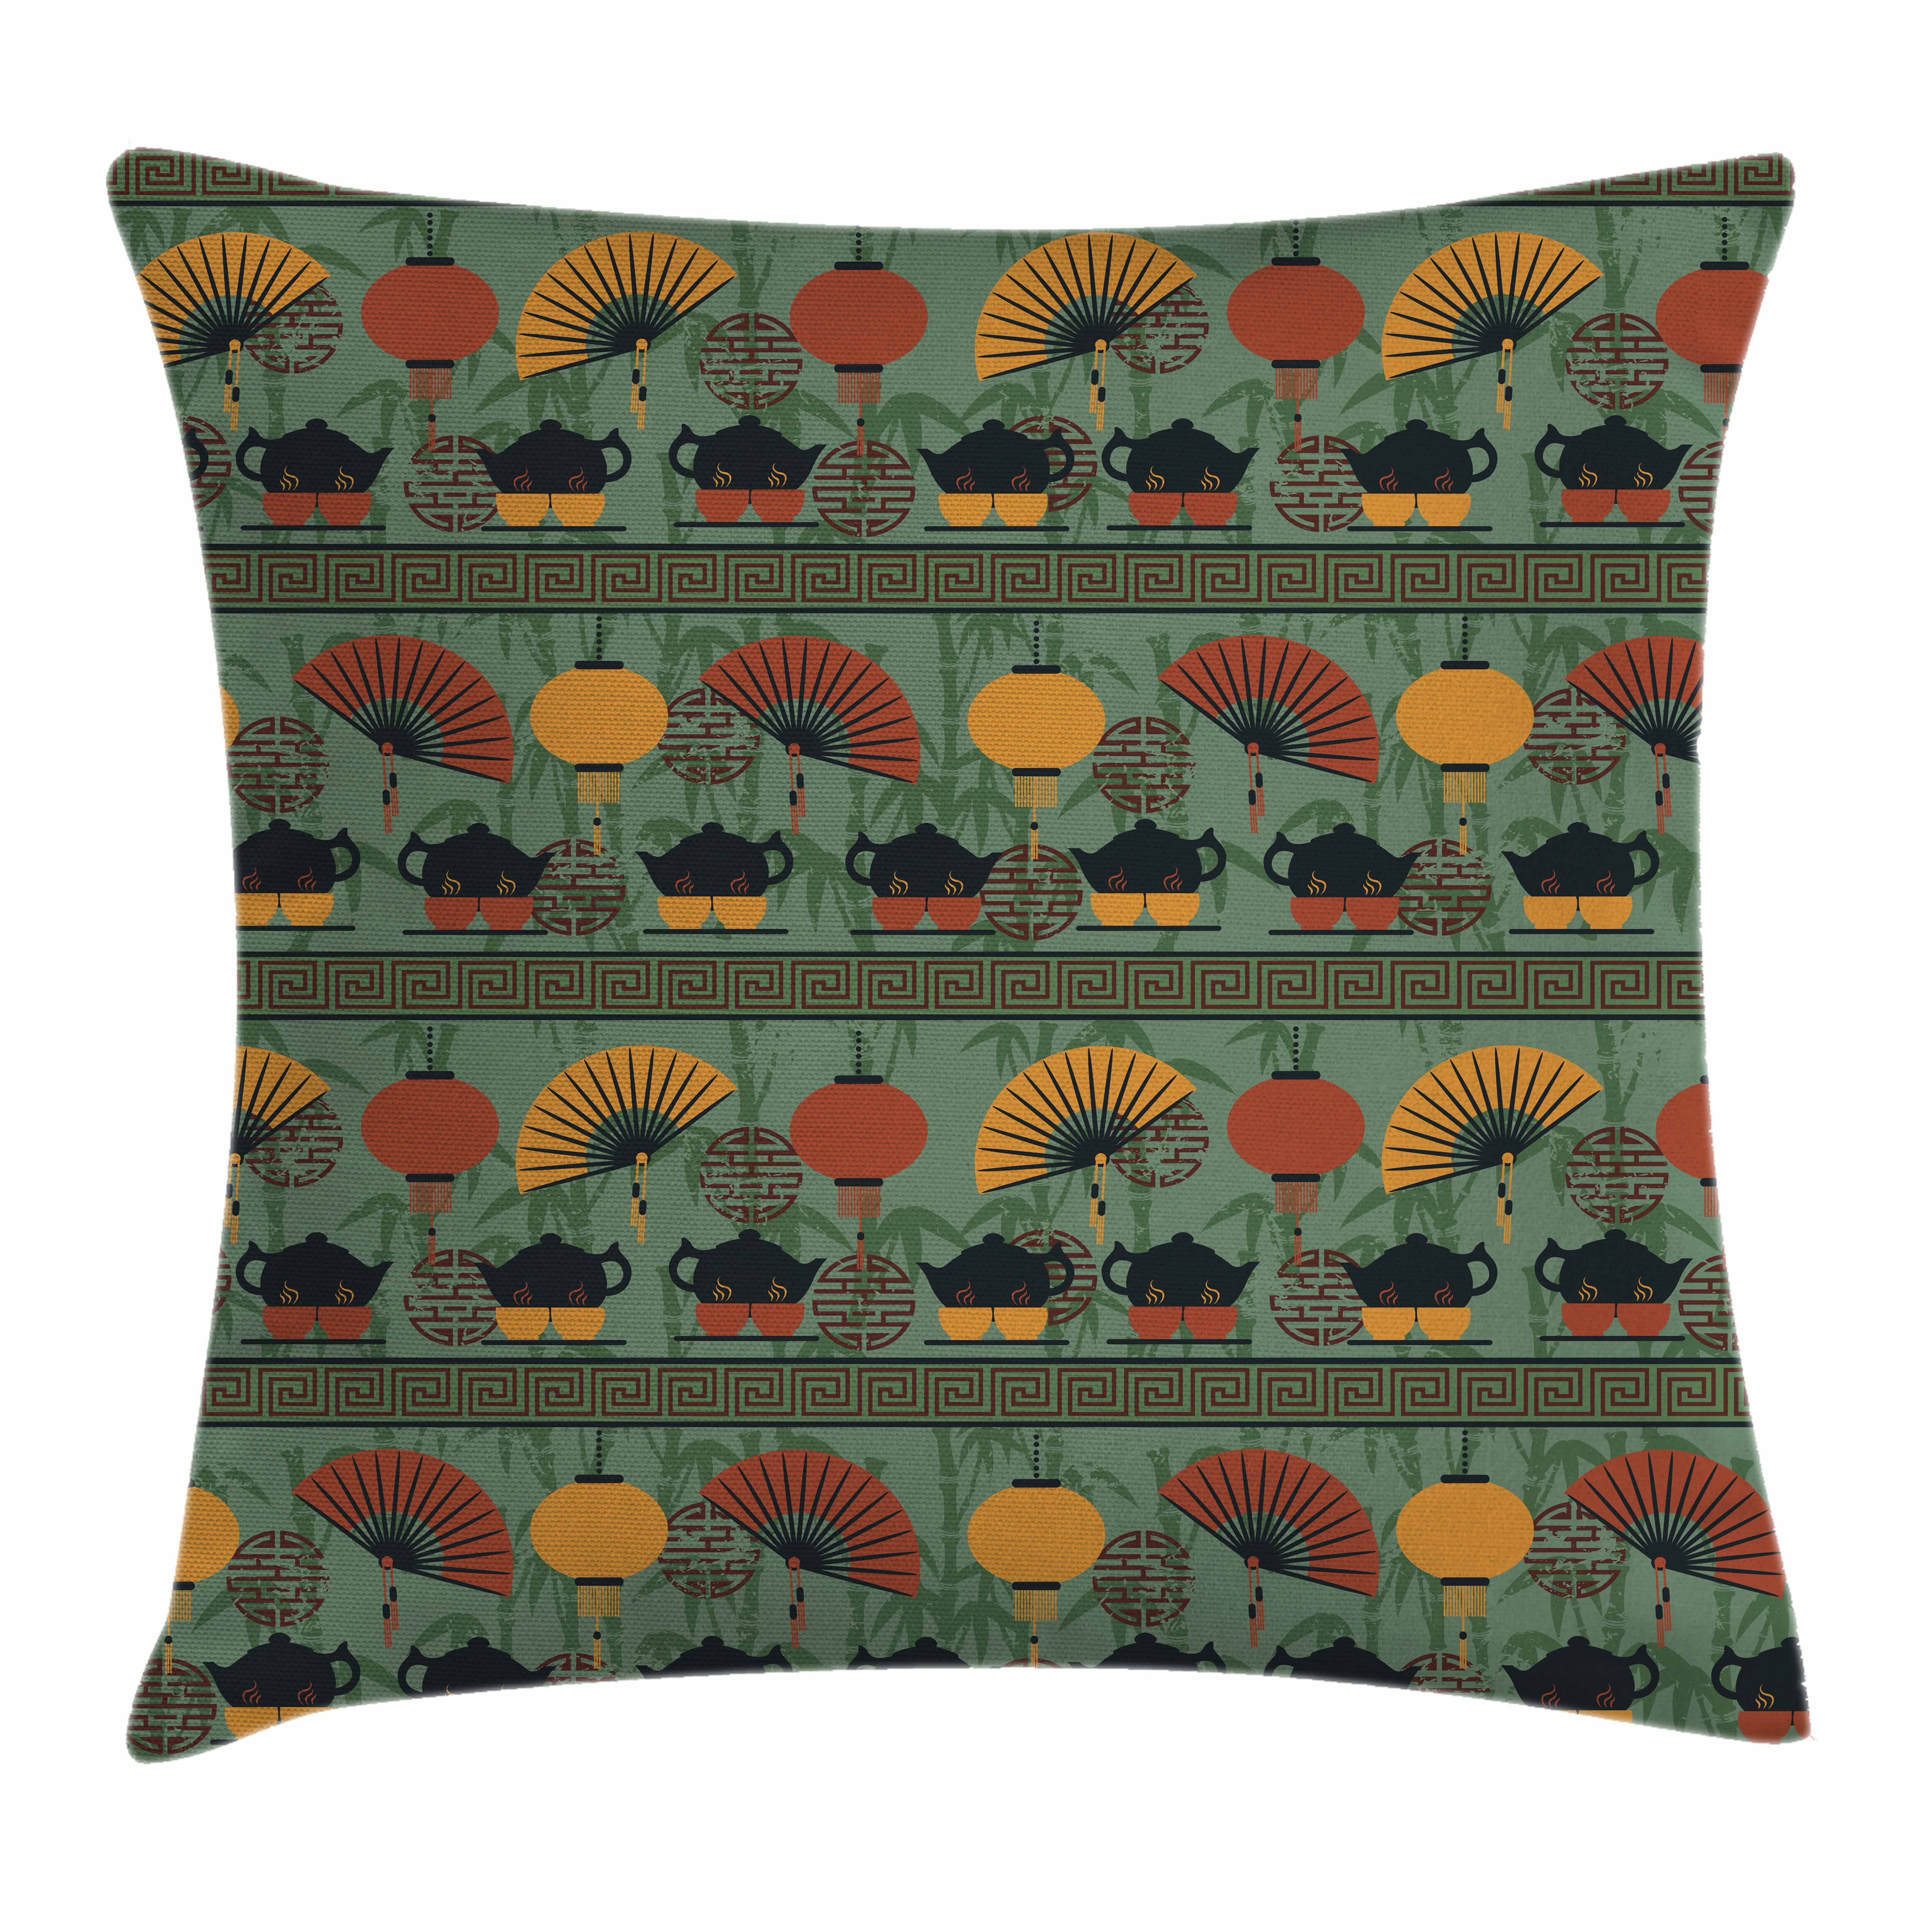 Tea Party Throw Pillow Cushion Cover, Asian Ethnicity Theme Grunge Bamboo Branches Chinese Lanterns, Decorative Square Accent Pillow Case, 16 X 16 Inches, Reseda Green Orange Marigold, by Ambesonne